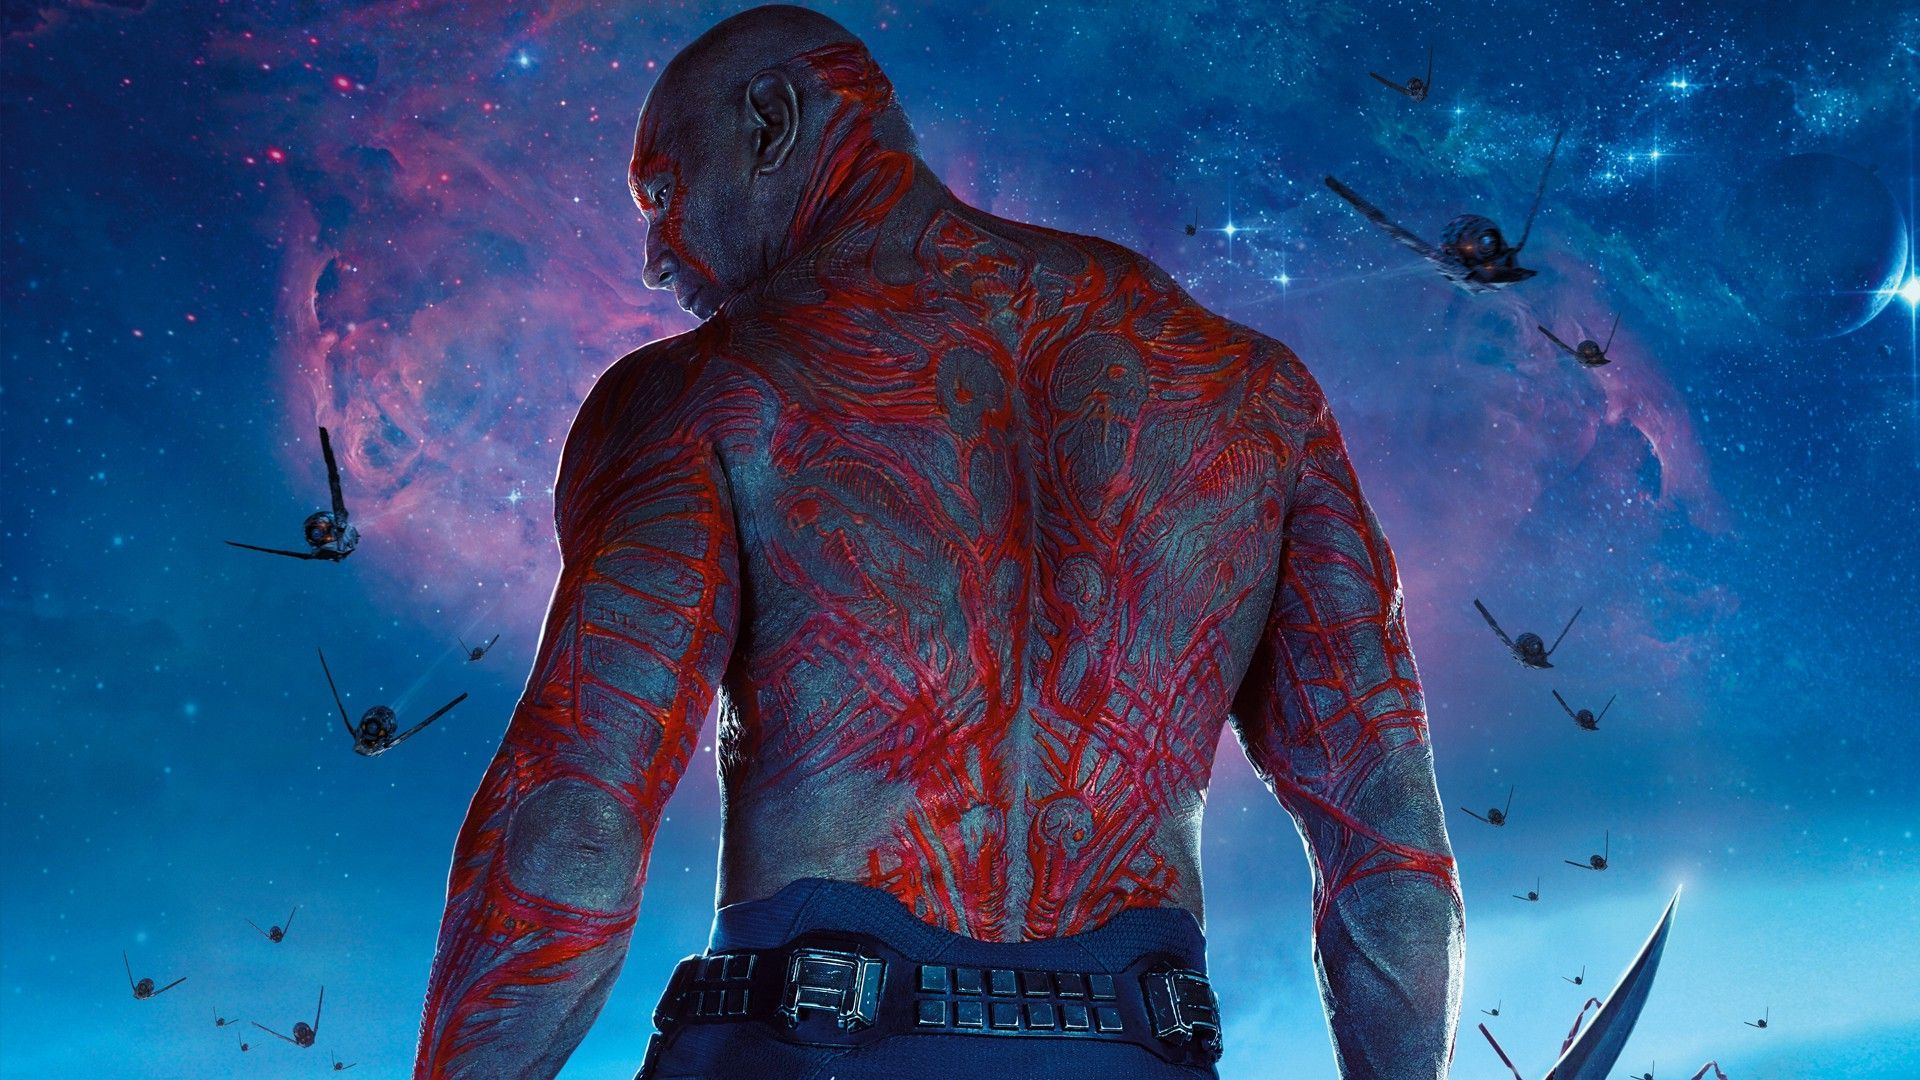 Drax the Destroyer   Guardians of the Galaxy wallpaper 34248 1920x1080